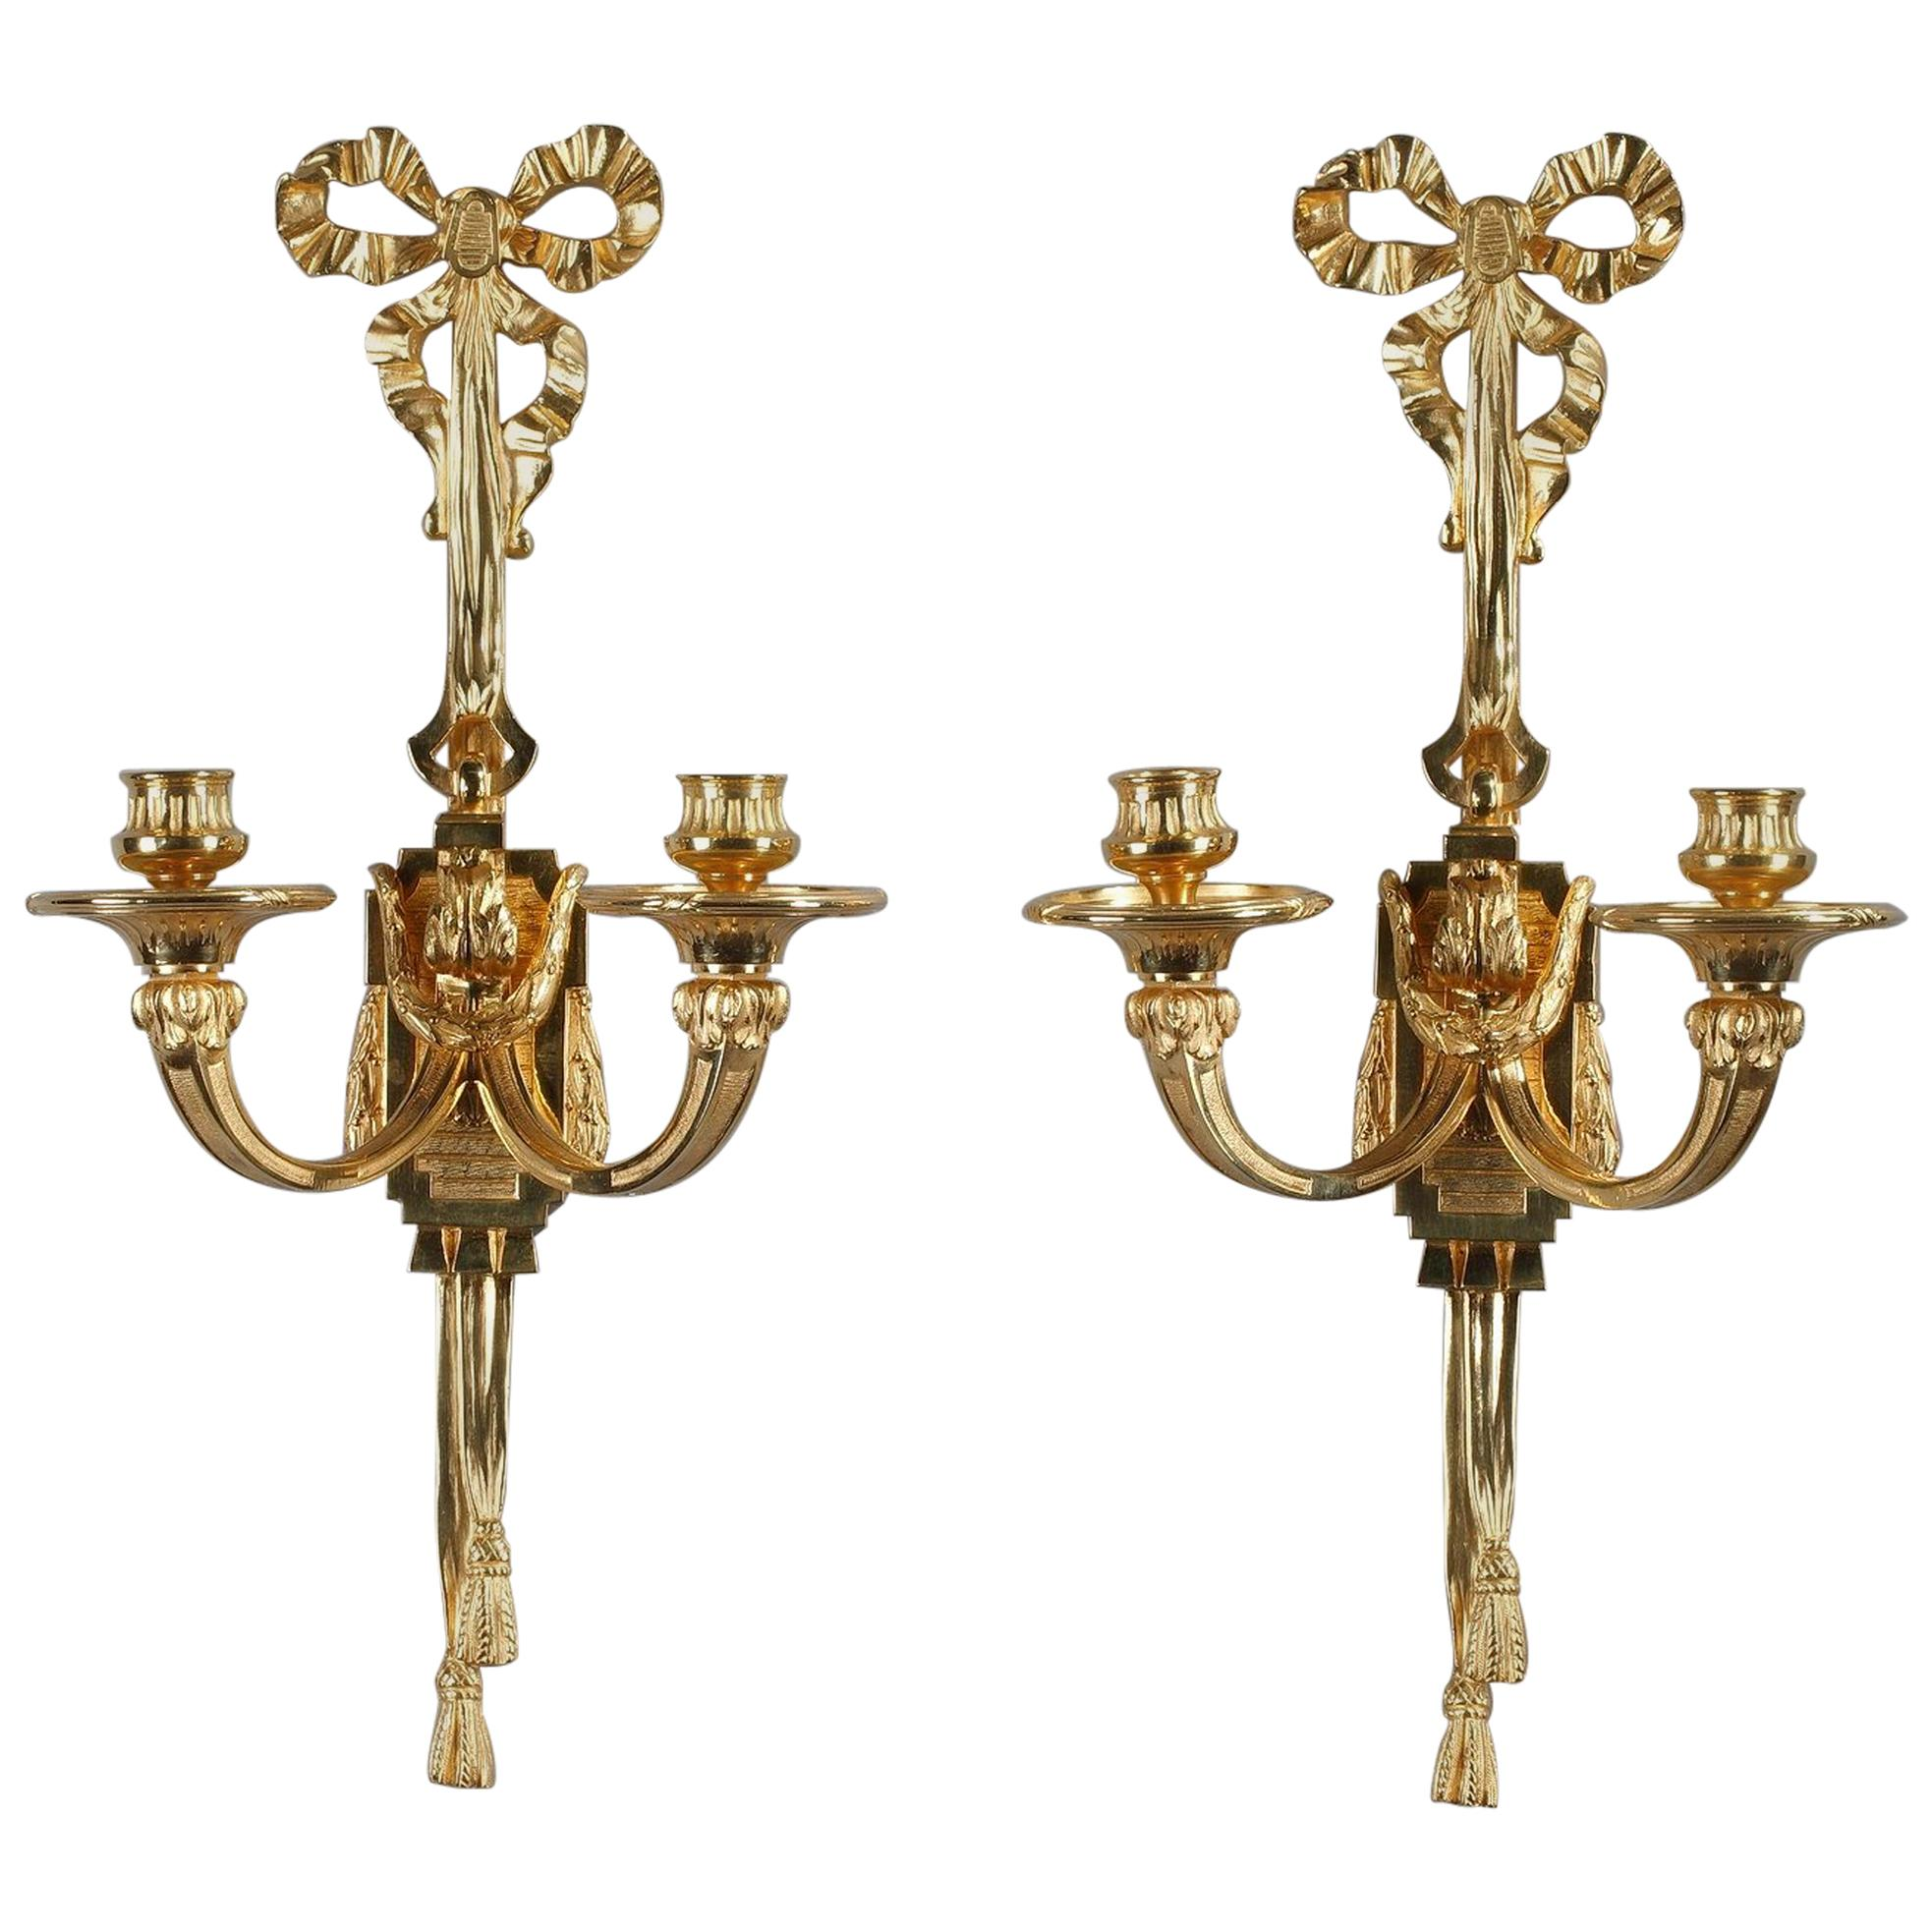 Late 19th Century Antique Candle Wall Sconces in Louis XVI ... on Antique Style Candle Holder Sconces id=30036